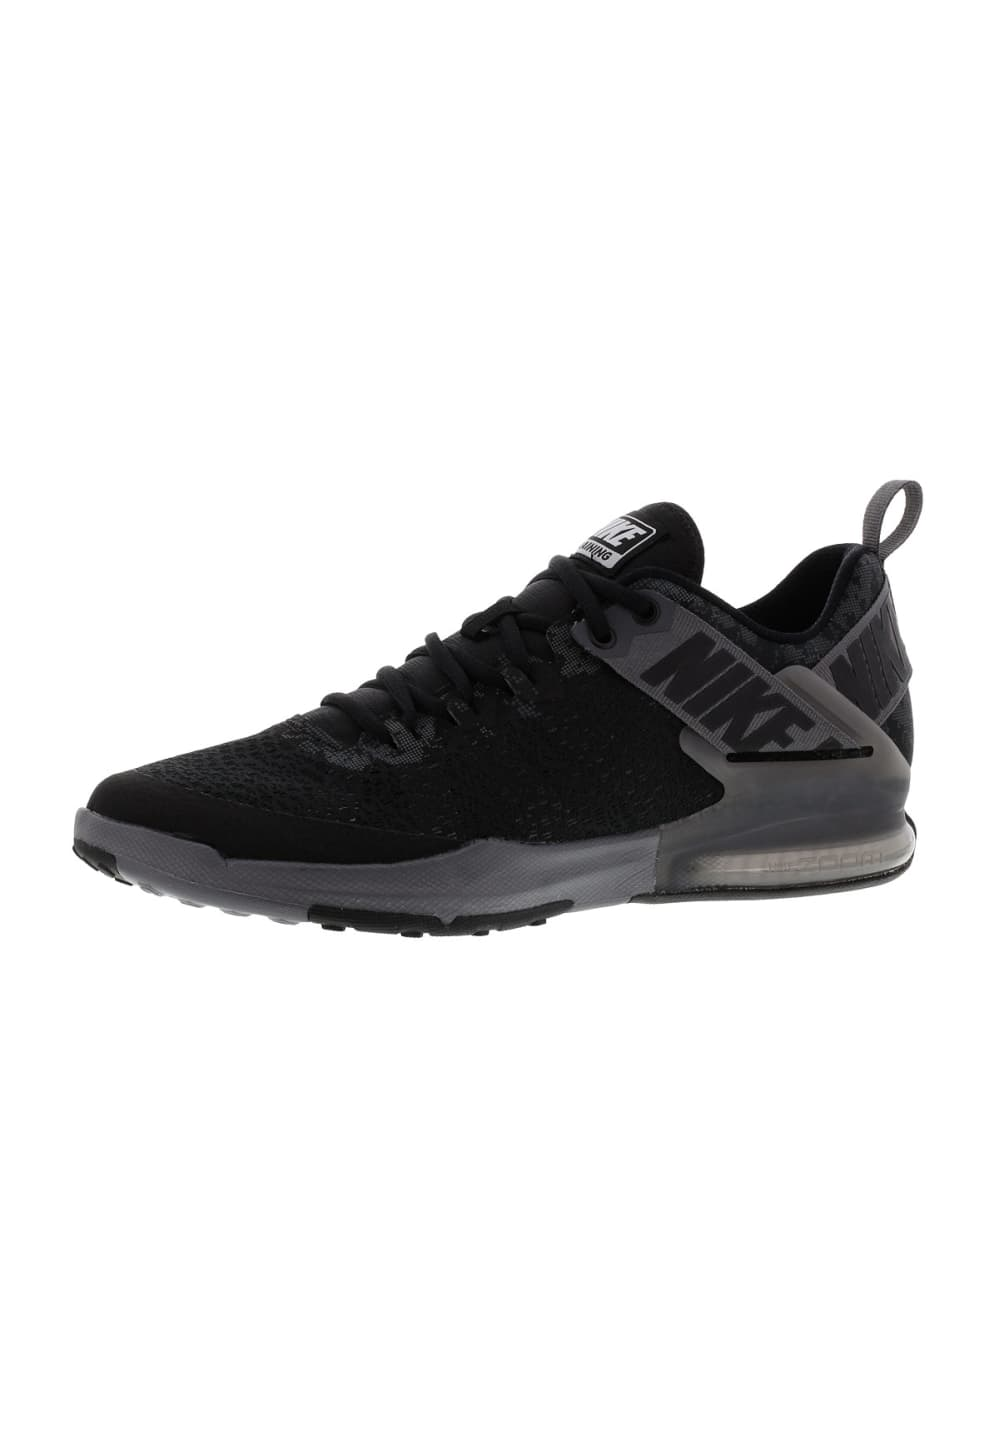 2 Pour Nike Zoom Tr Domination Homme Fitness Noir Chaussures 76vYymIbgf